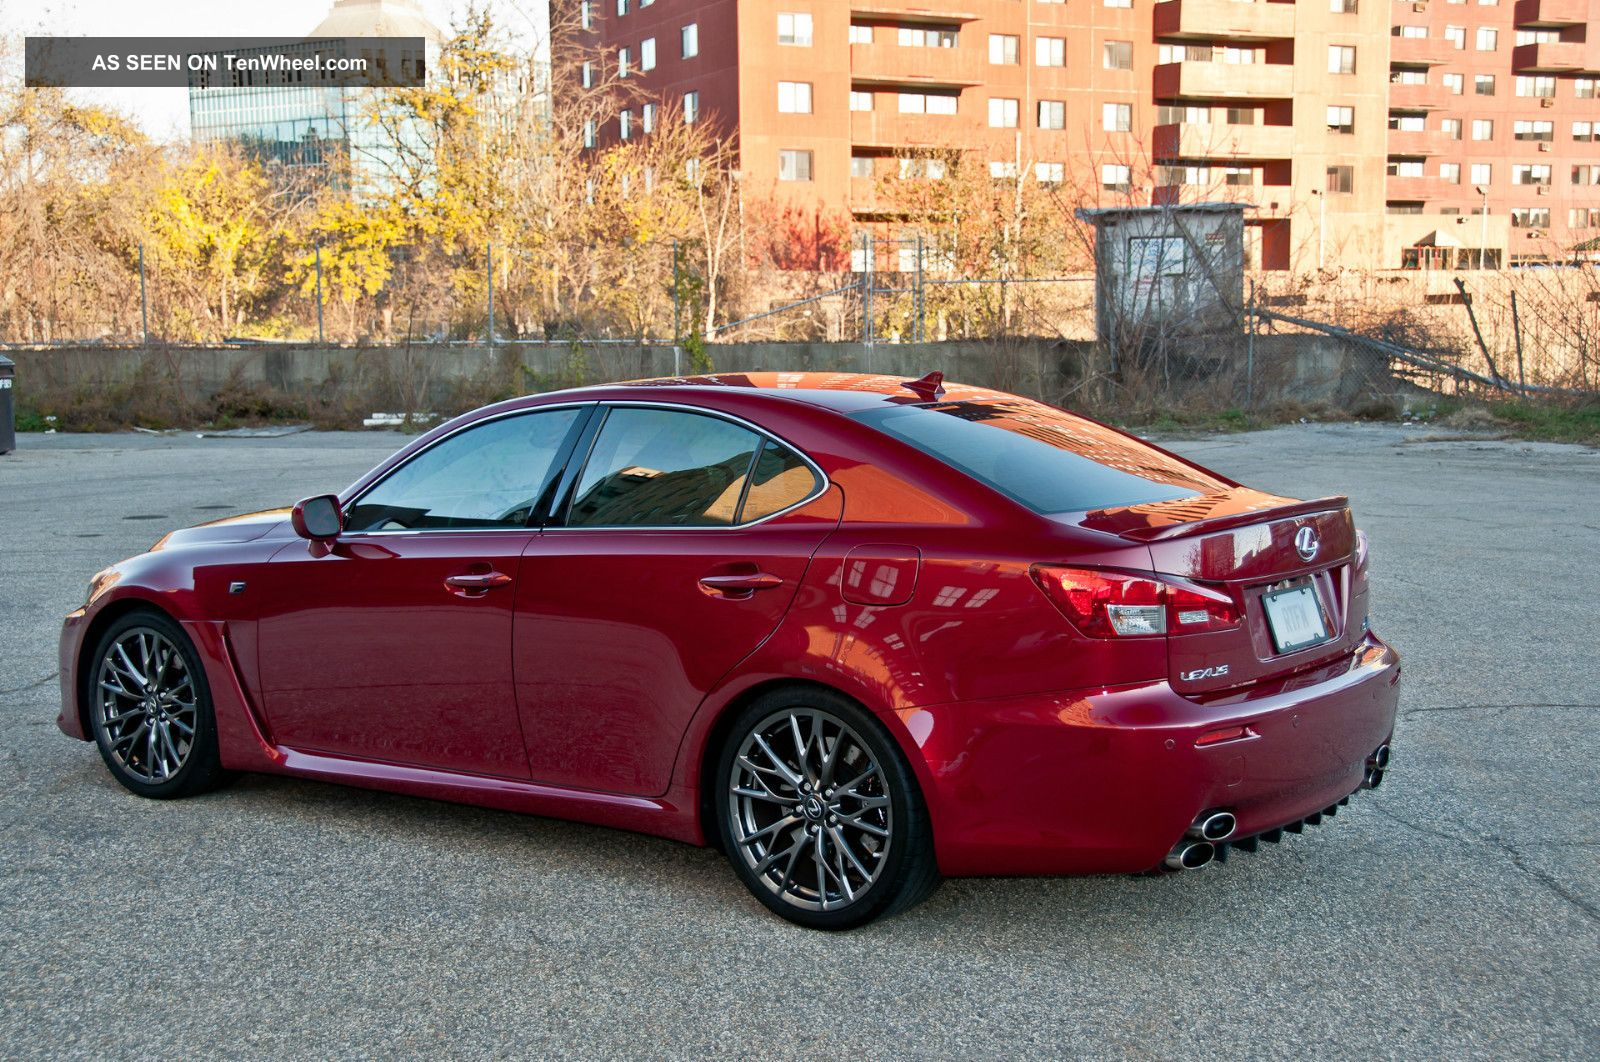 2010 lexus is f pristine condition. Black Bedroom Furniture Sets. Home Design Ideas